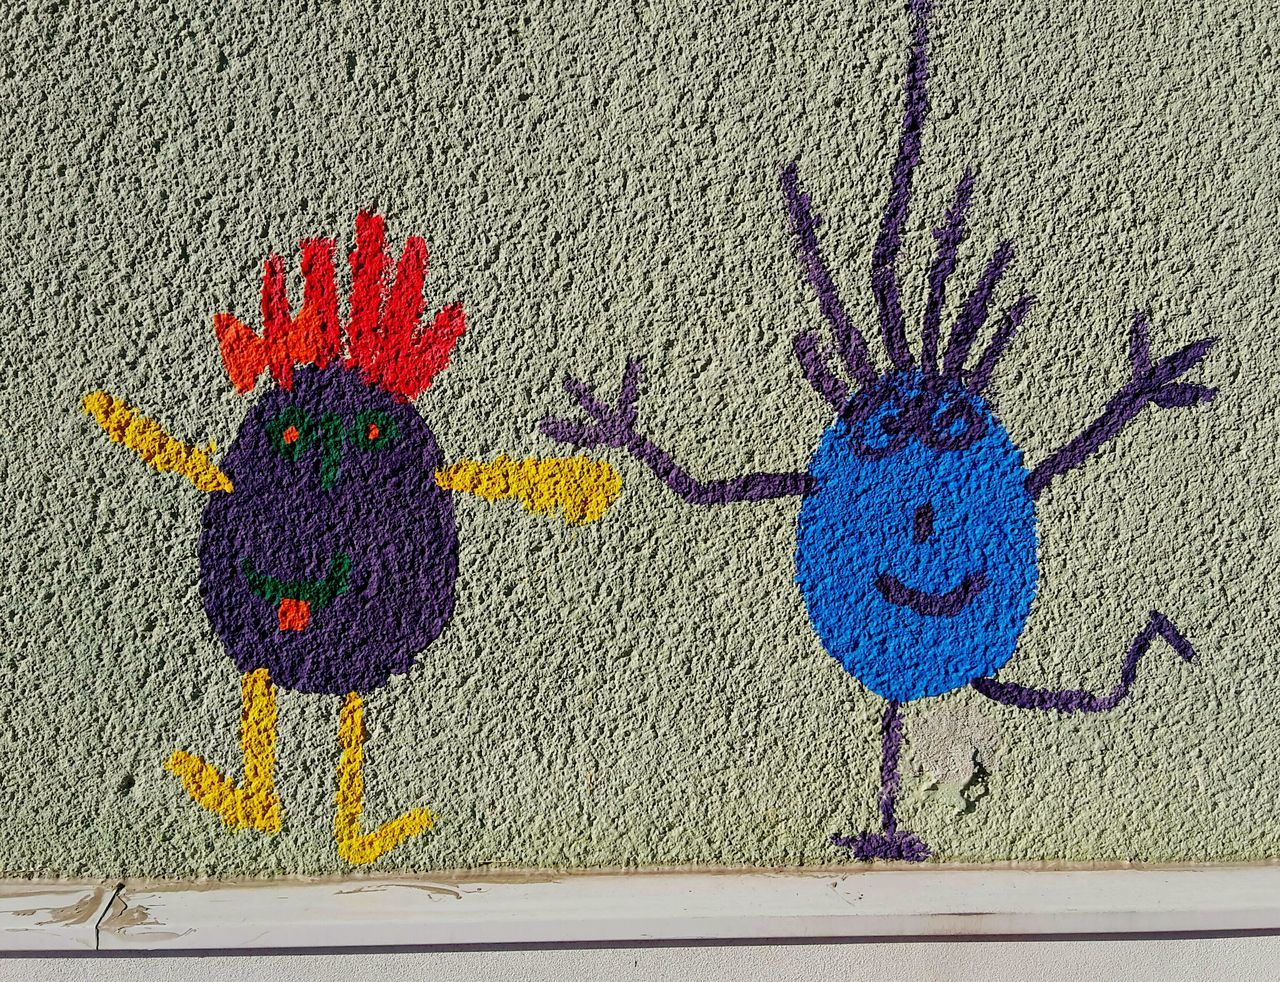 Two funny little guys painted on a wall Multi Colored Art And Craft Creativity No People Full Frame Drawing - Art Product Outdoors Day Variation Close-up Eggs Egg Men Children's Painting Funny Two Two Guys Colors Colorful Wall